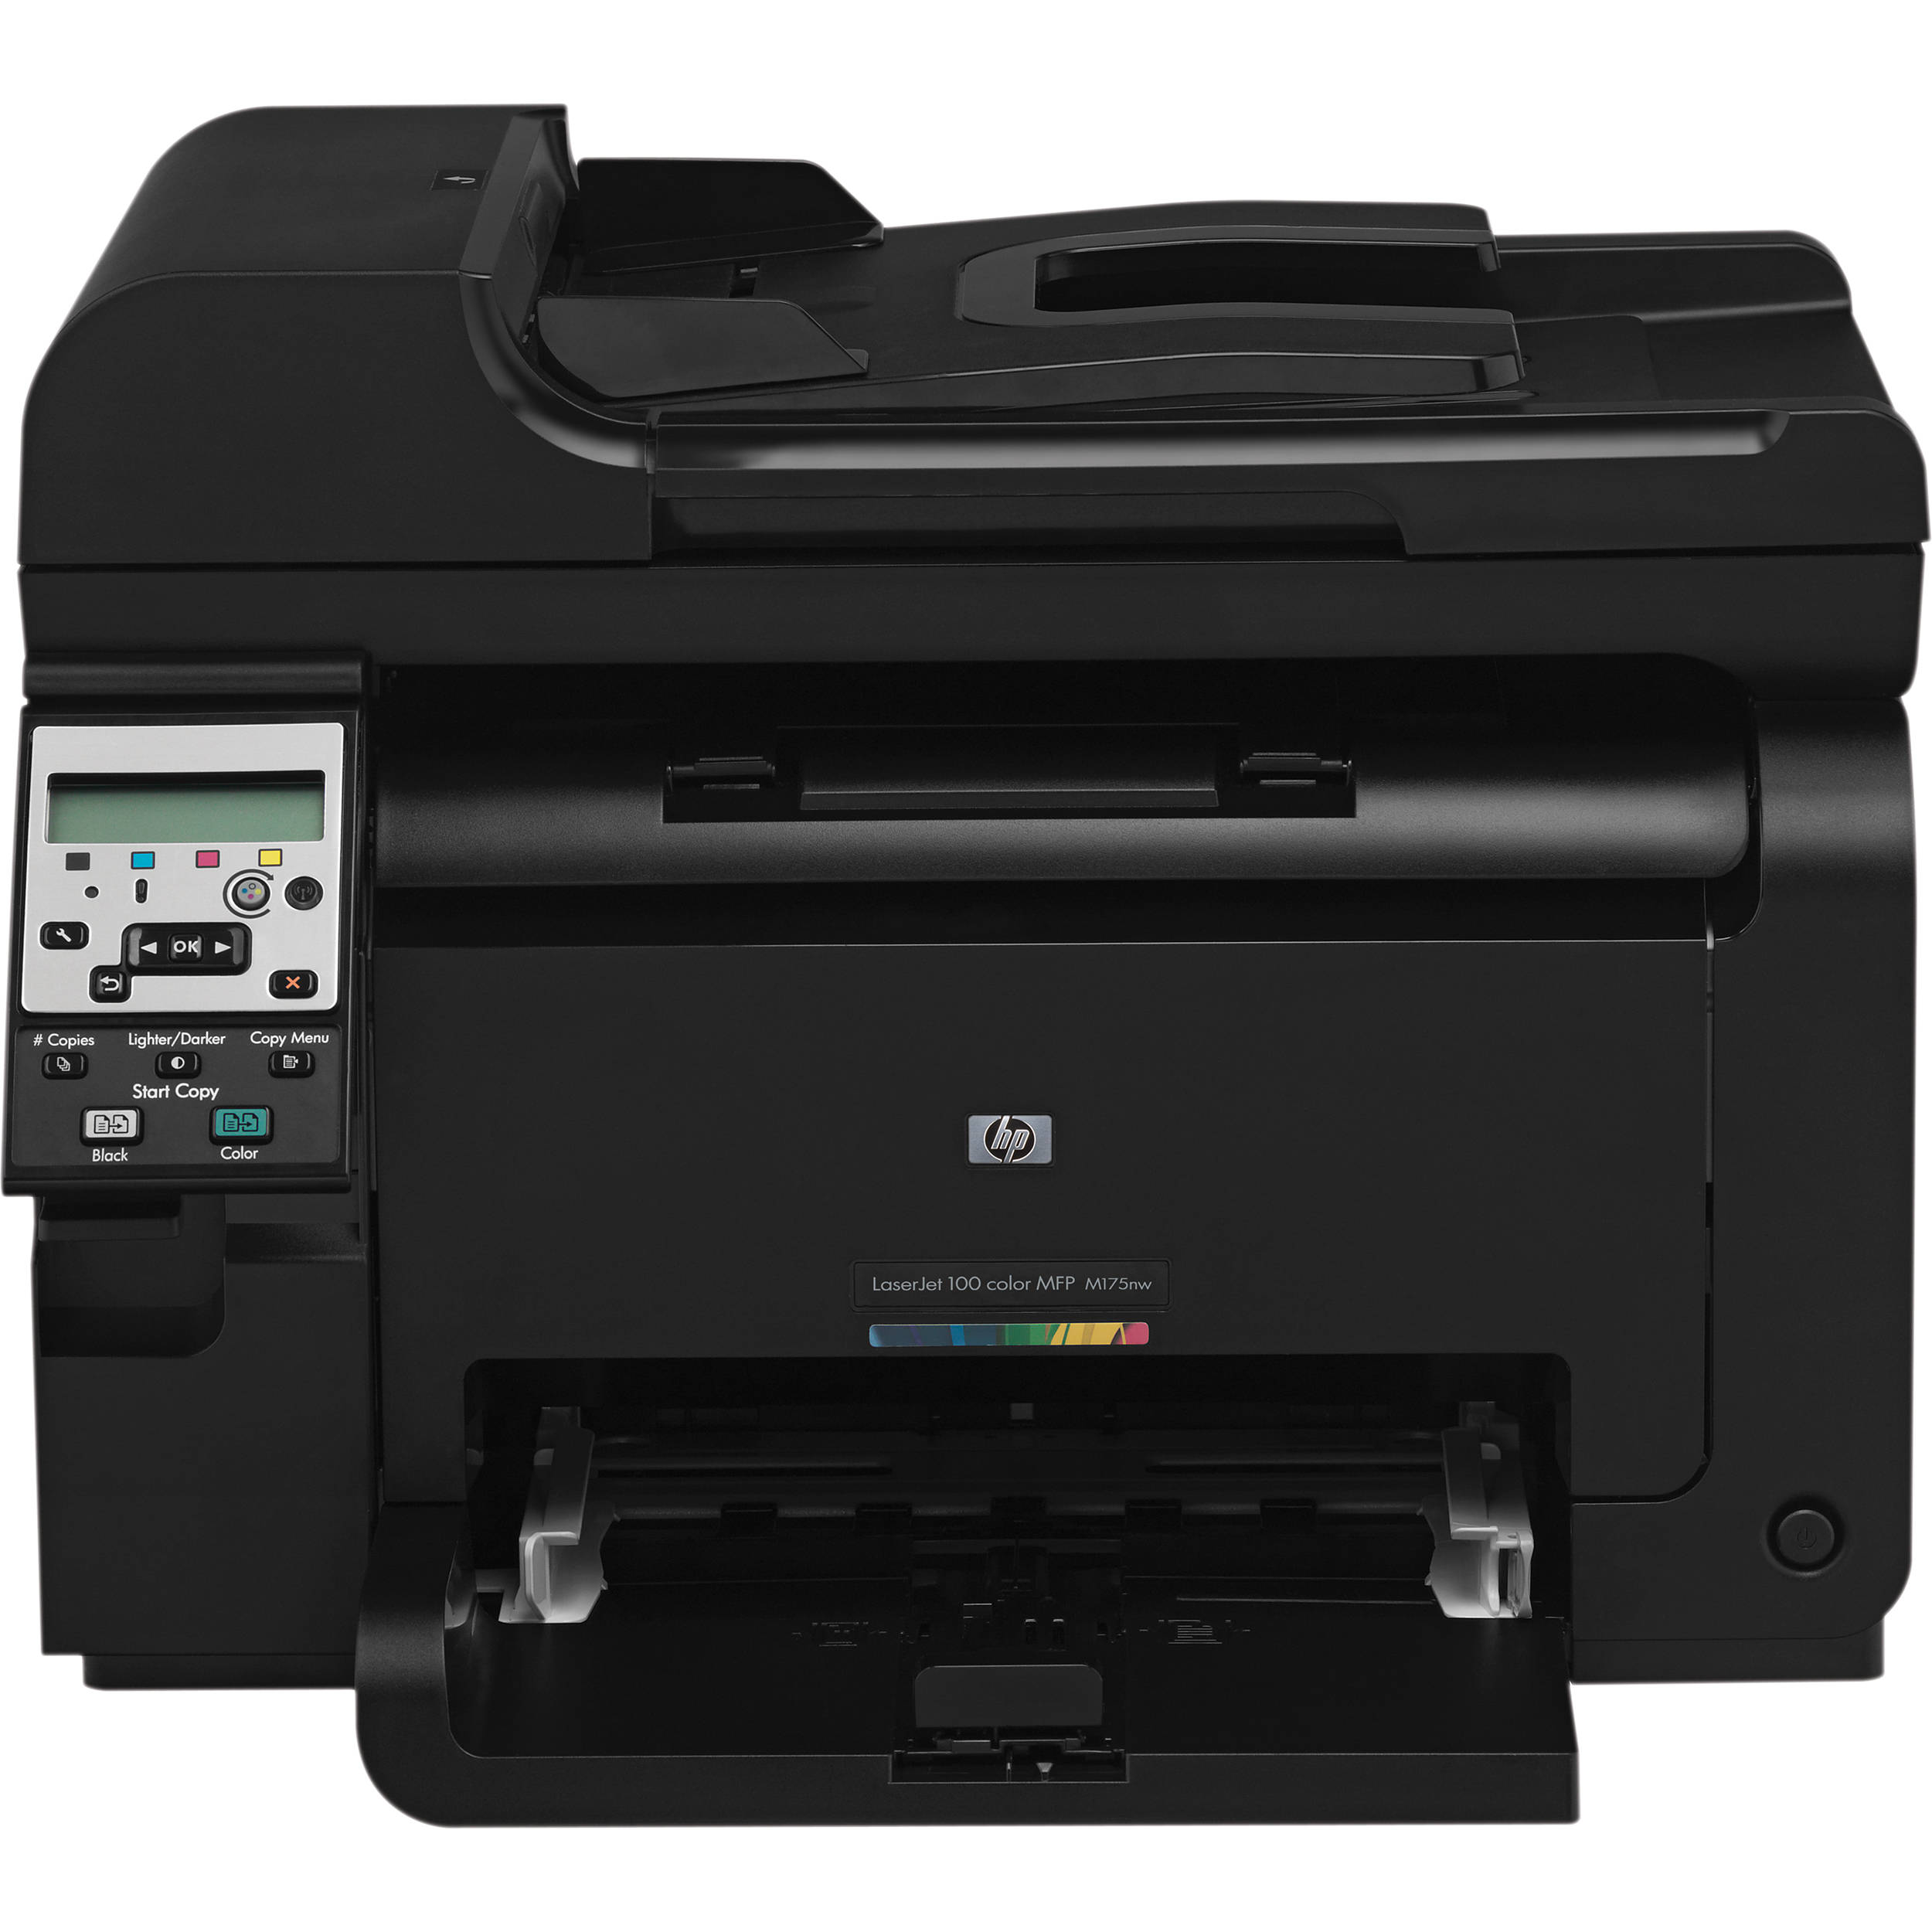 hp laserjet pro 100 m175nw wireless color all in one laser printer - Laserjet 100 Color Mfp M175nw